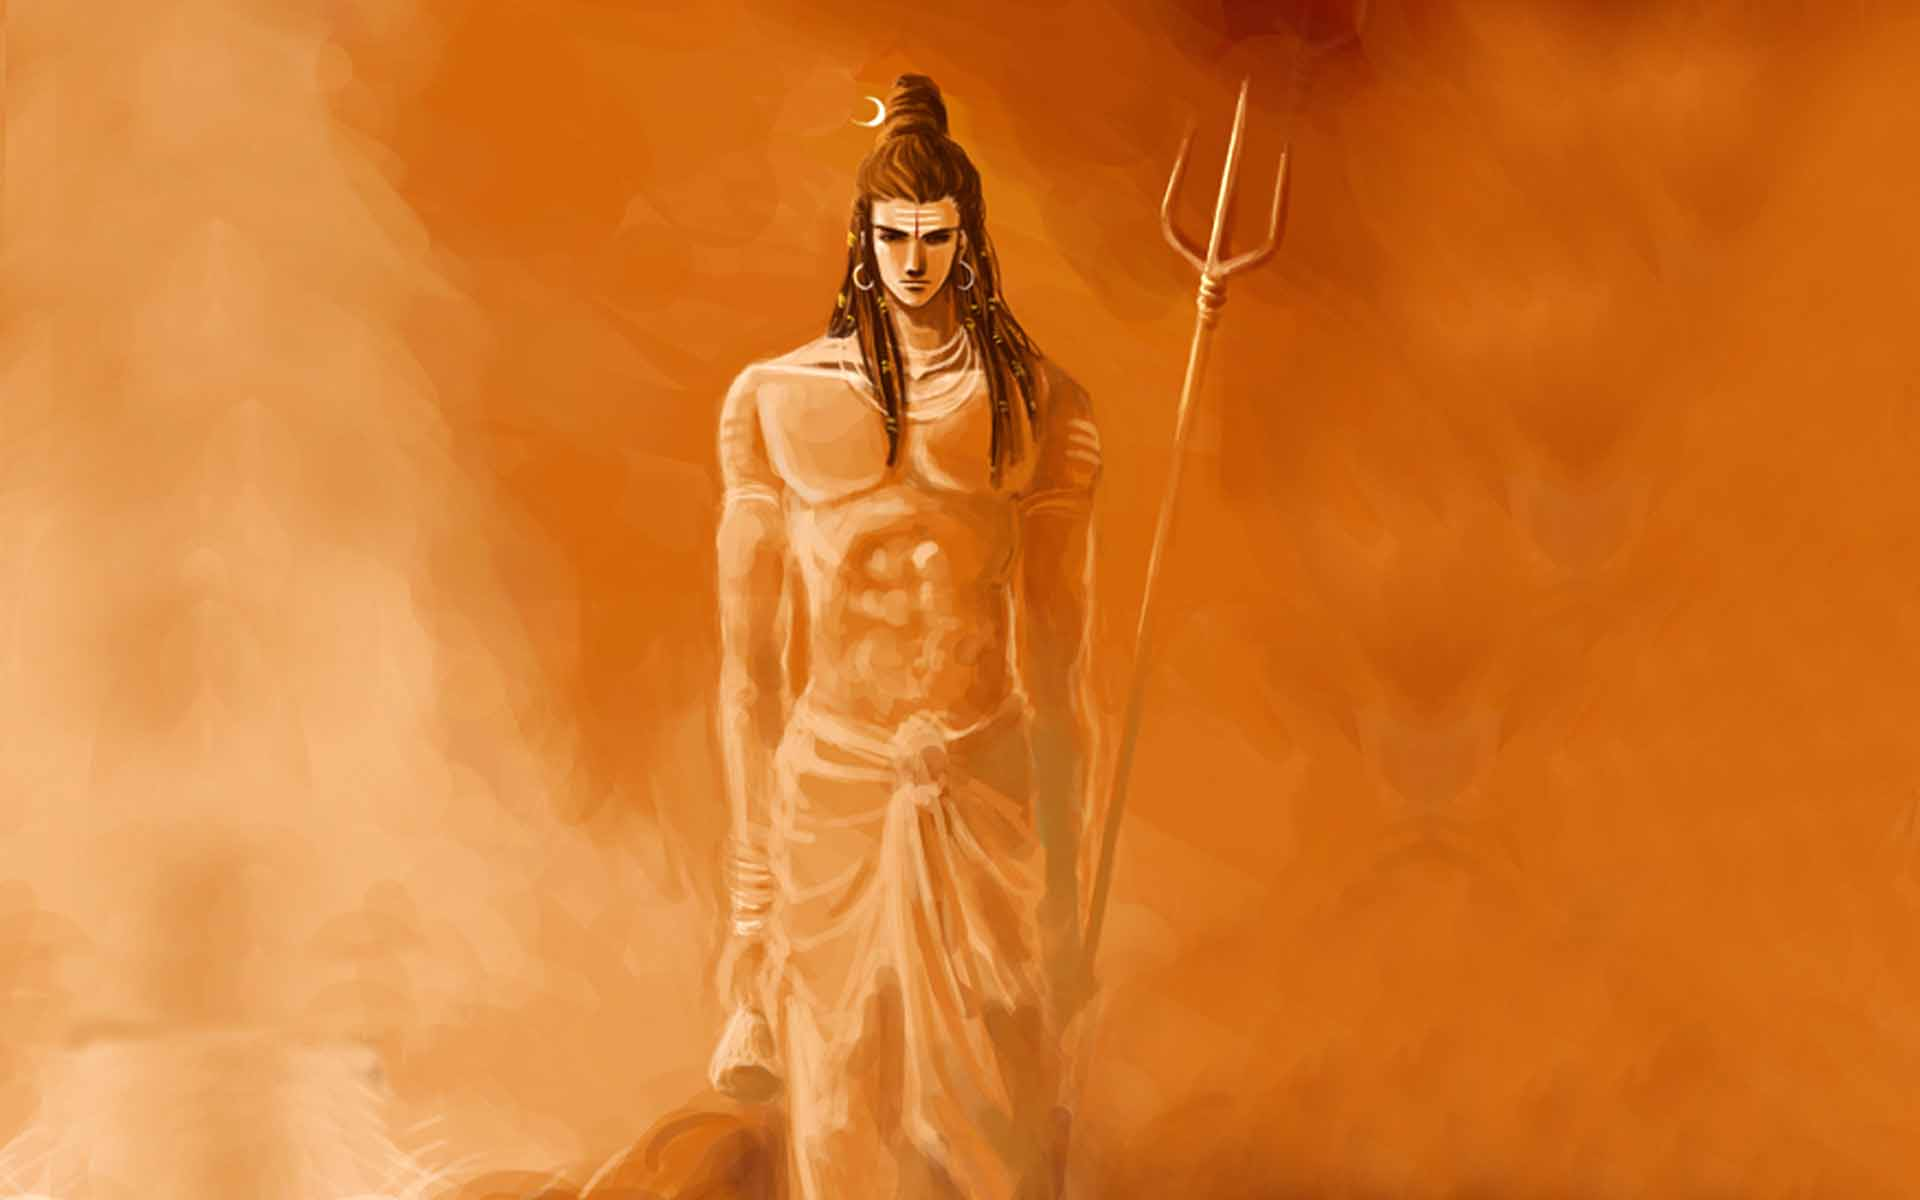 38 382664 animated lord shiva images hd 1080p